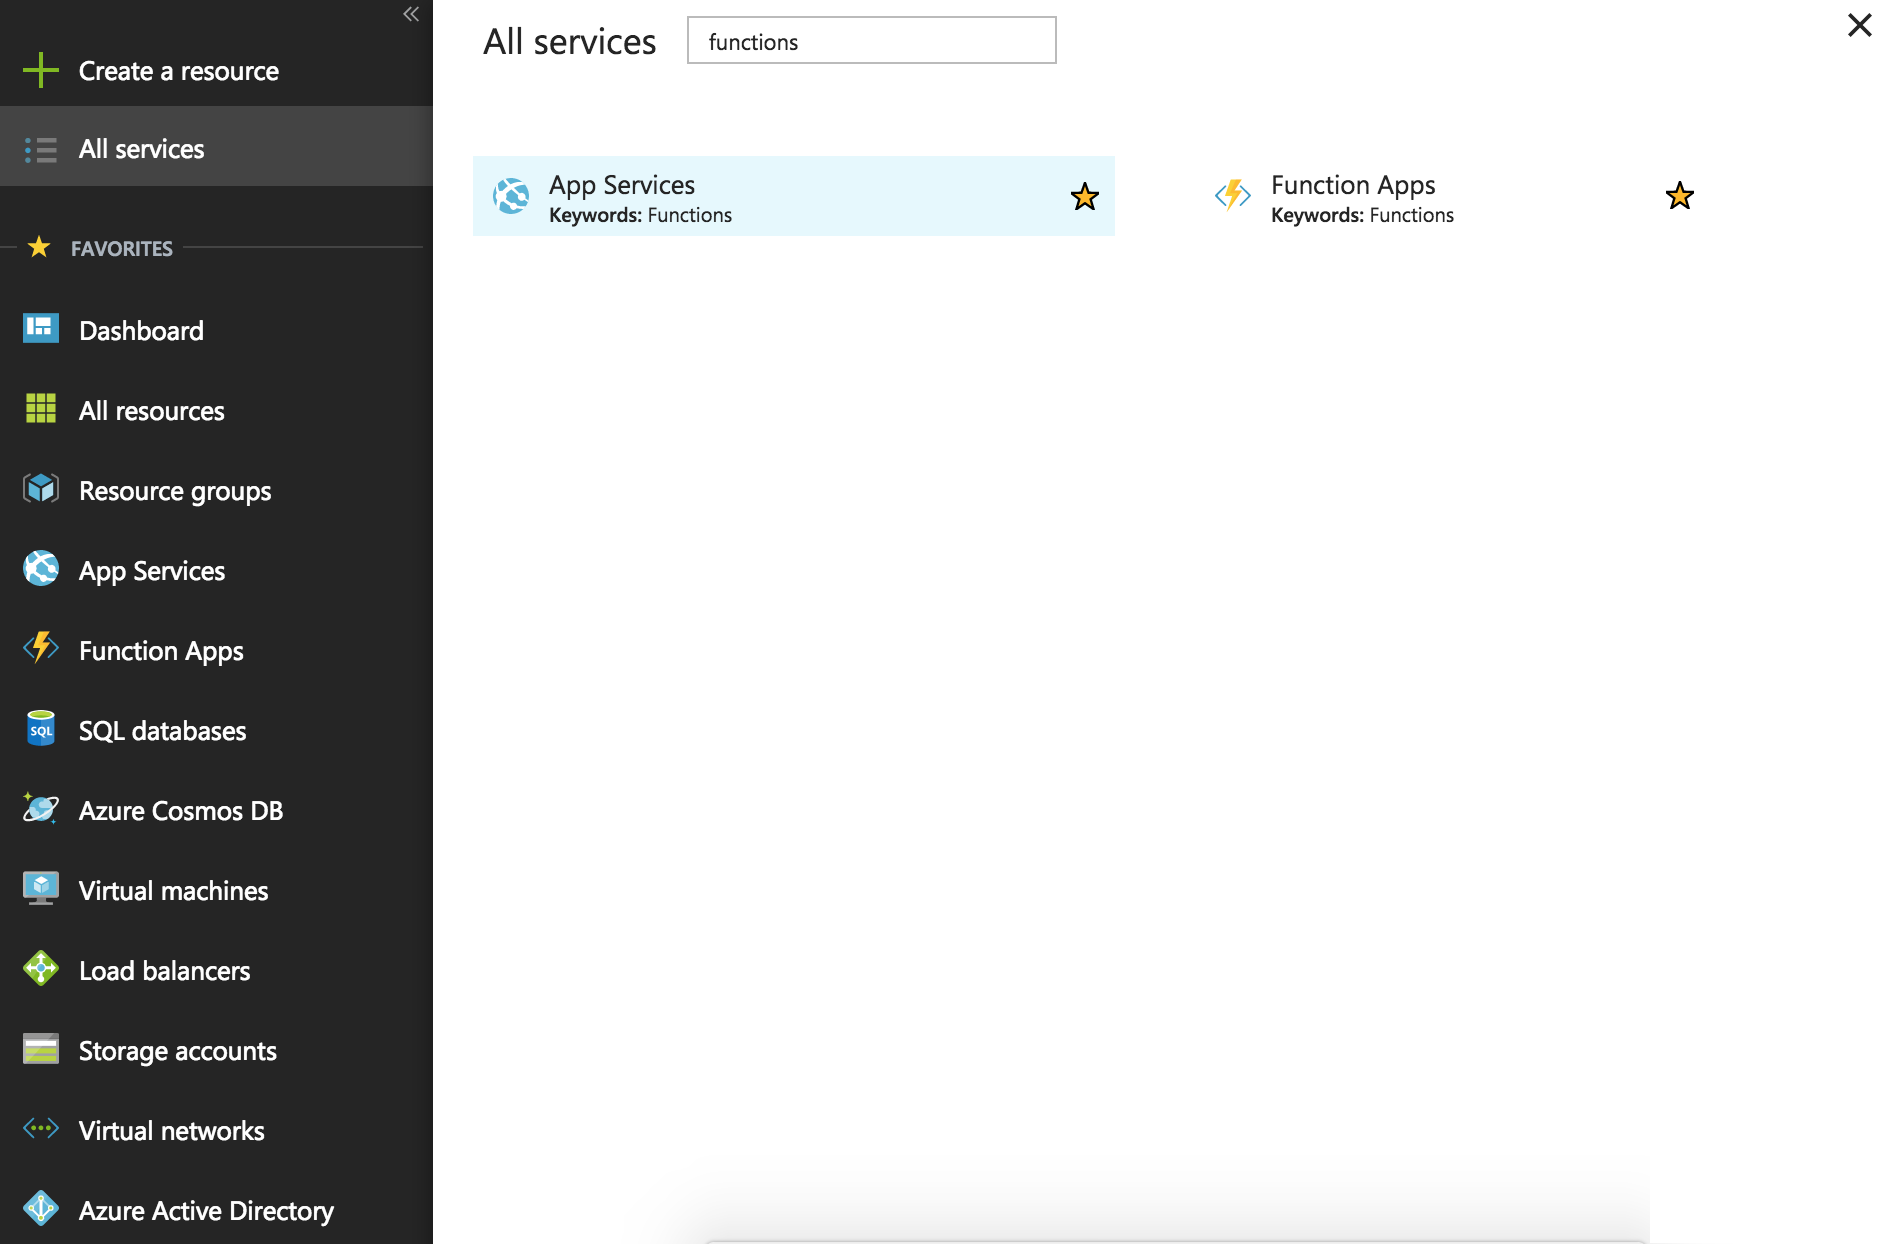 Introduction to Microsoft Azure Functions - Building